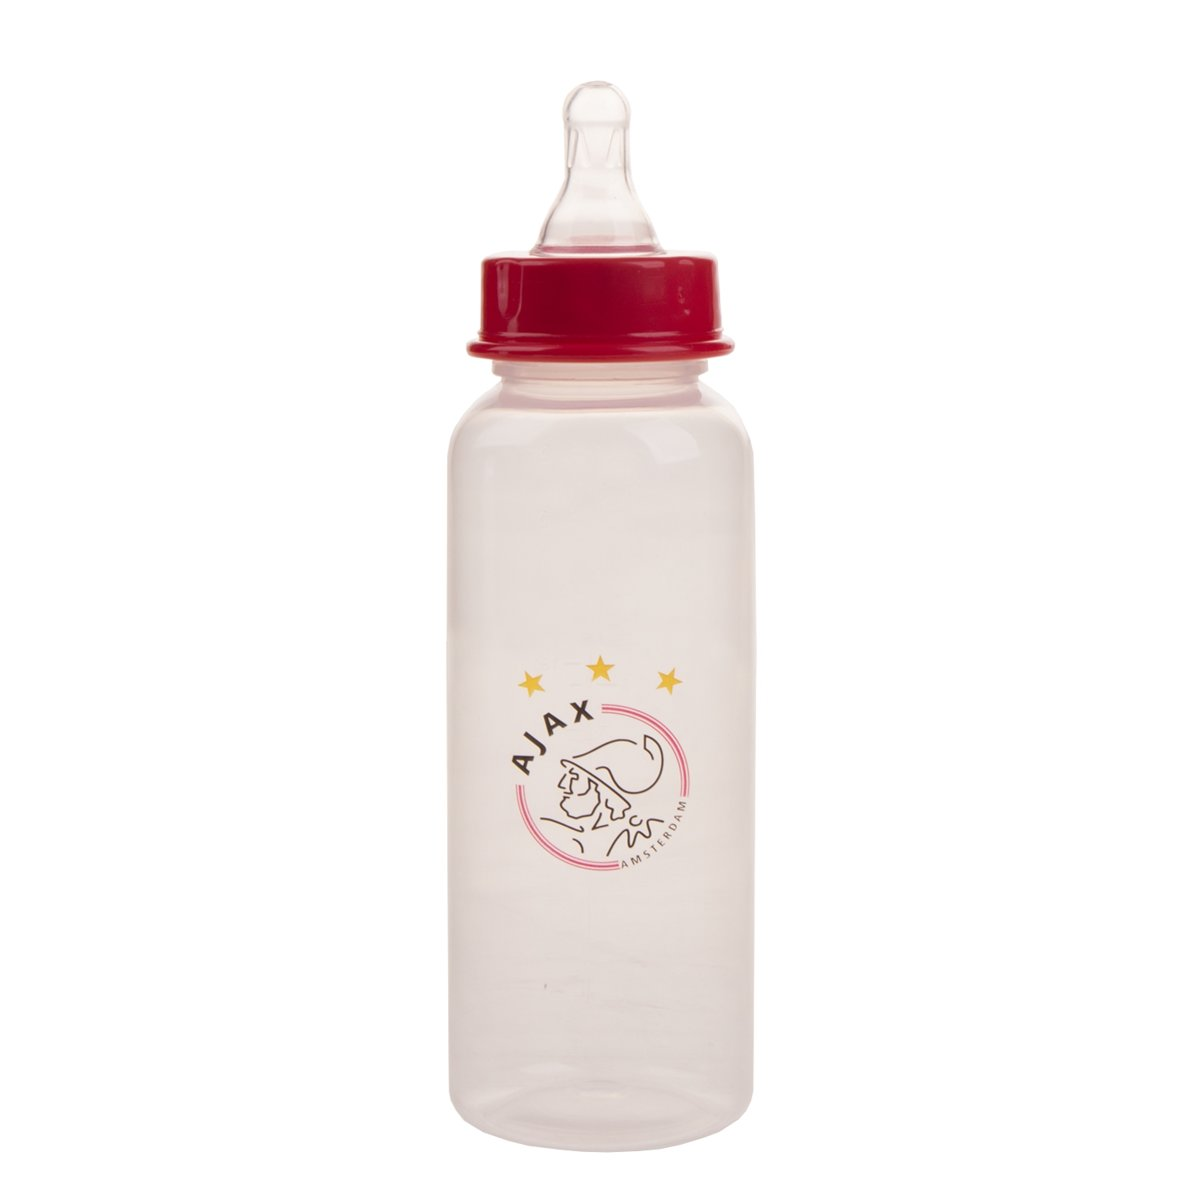 Baby fles Ajax 250 ml